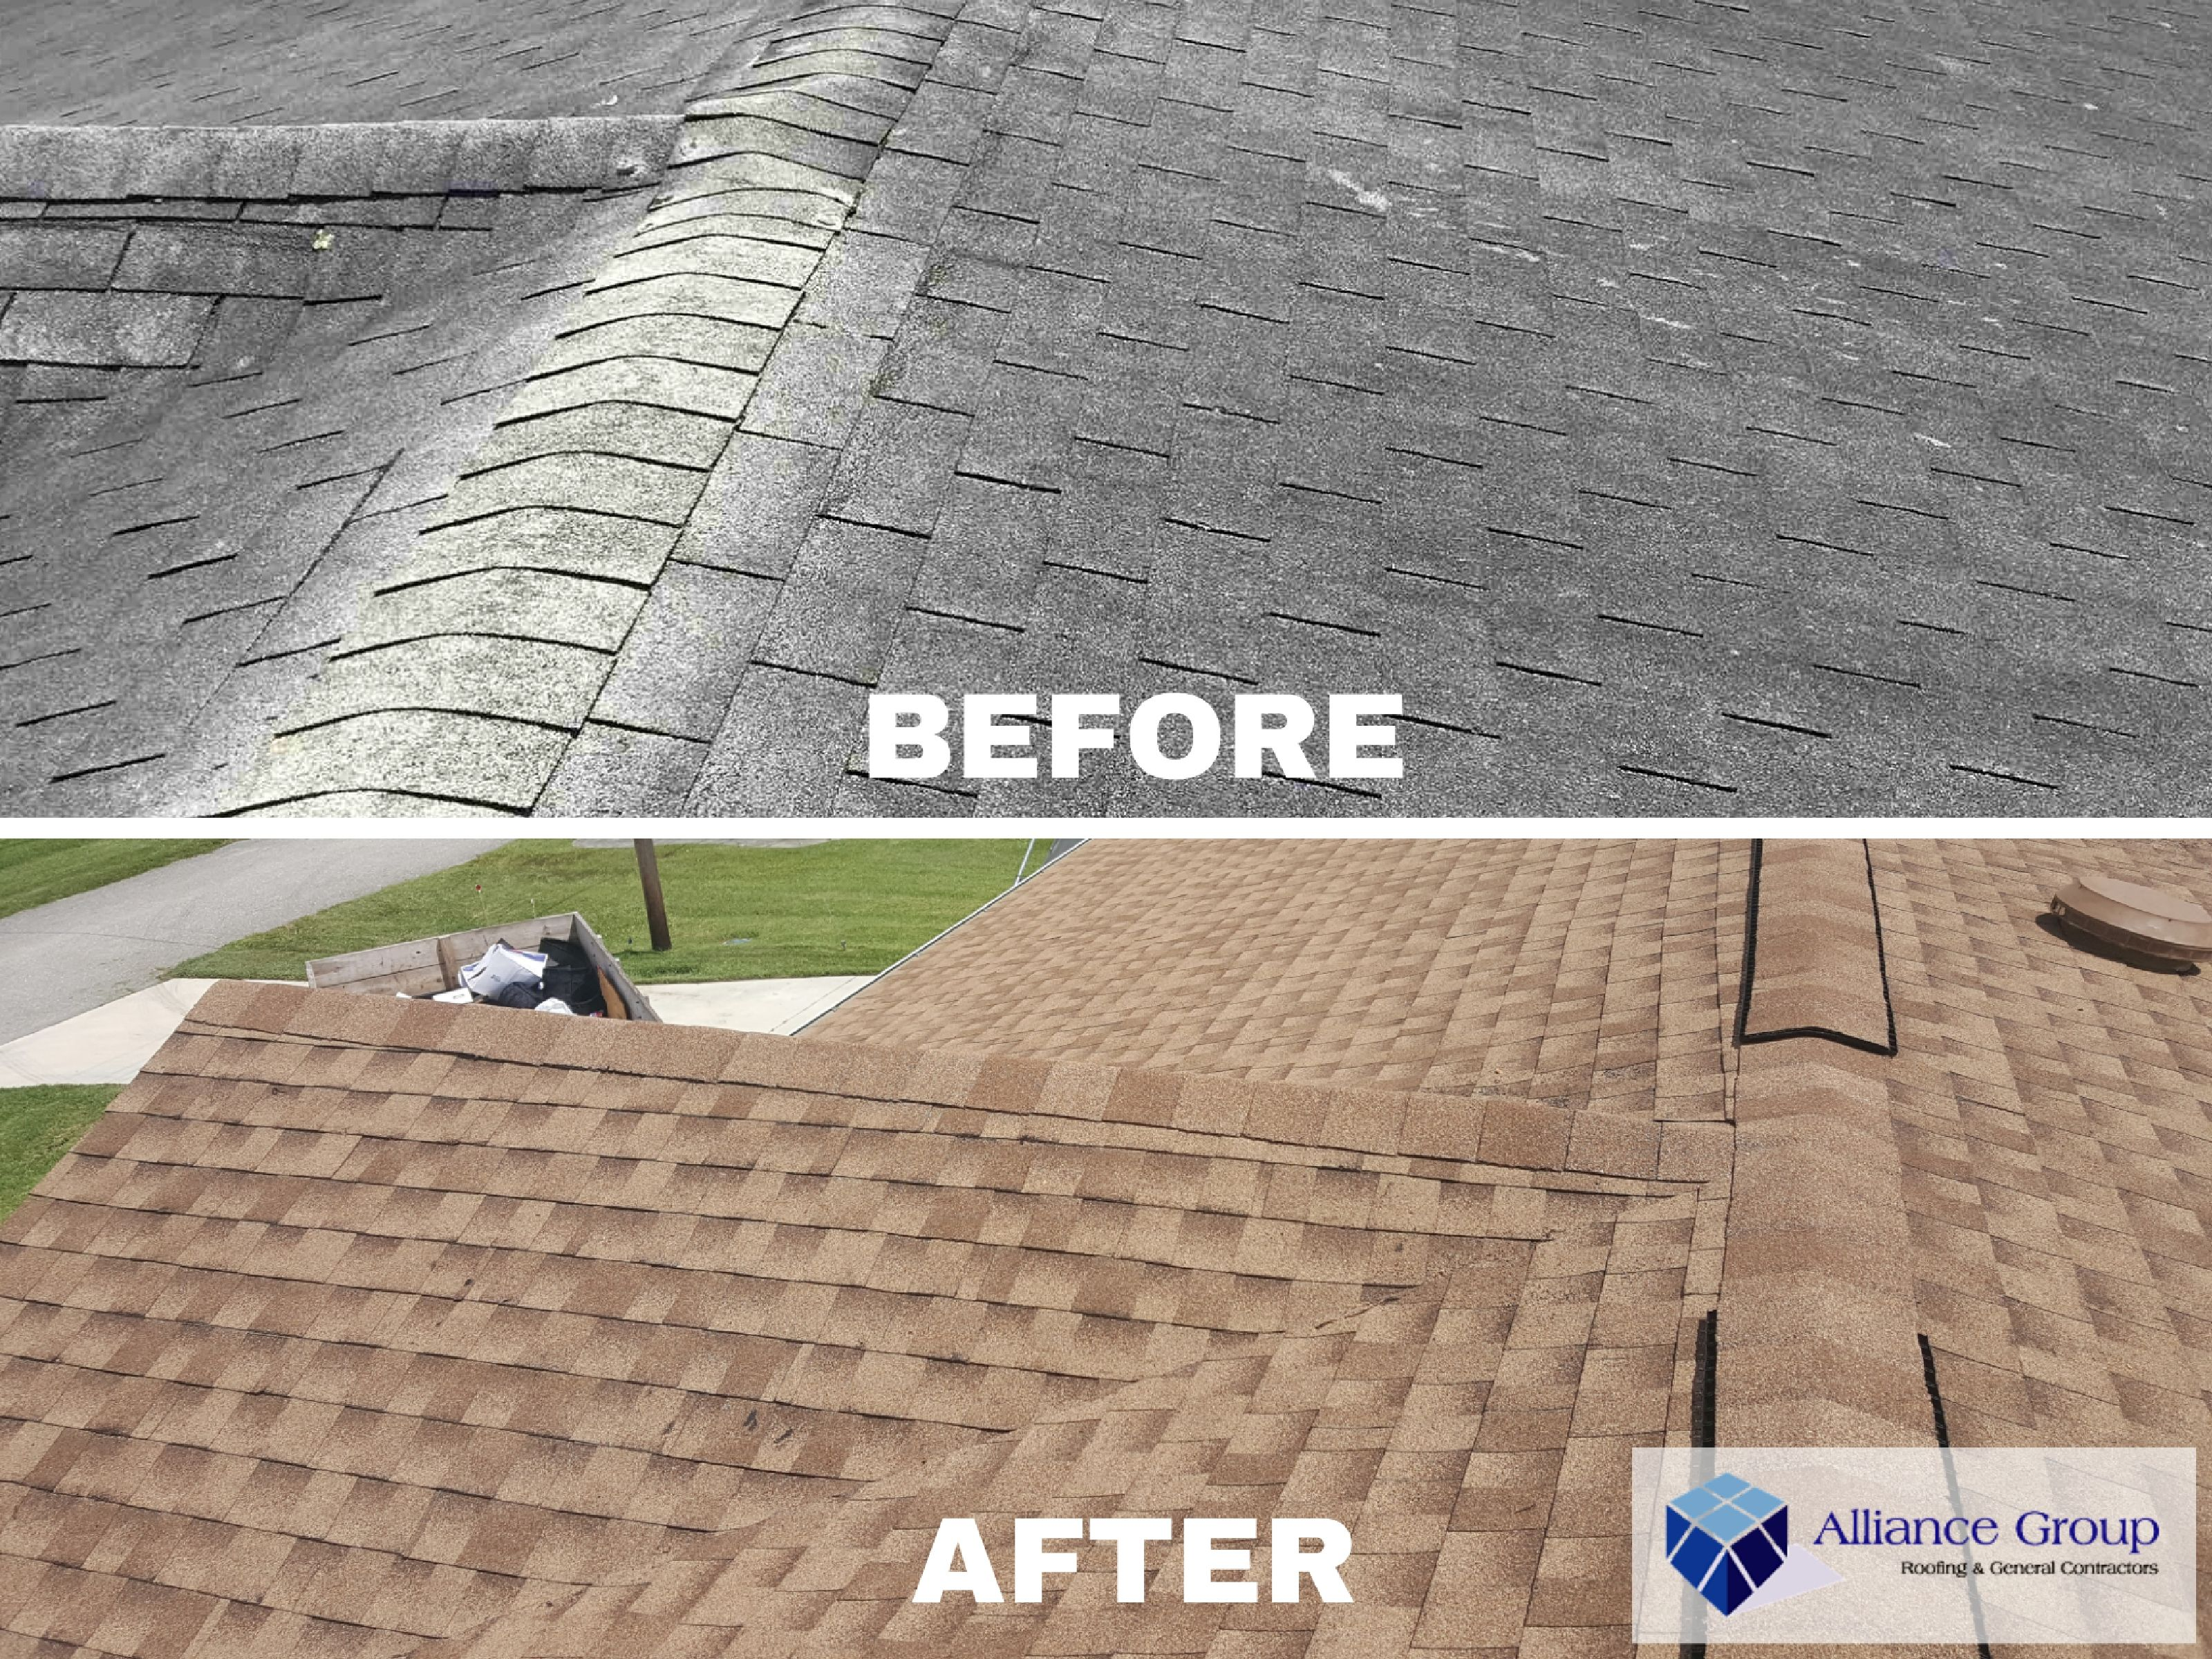 Before After Shingle Roof Project Is Your Roof Looking Worn Maybe It S Time For A Change Call 800 822 Roofing Specialists Residential Roofing Roof Repair